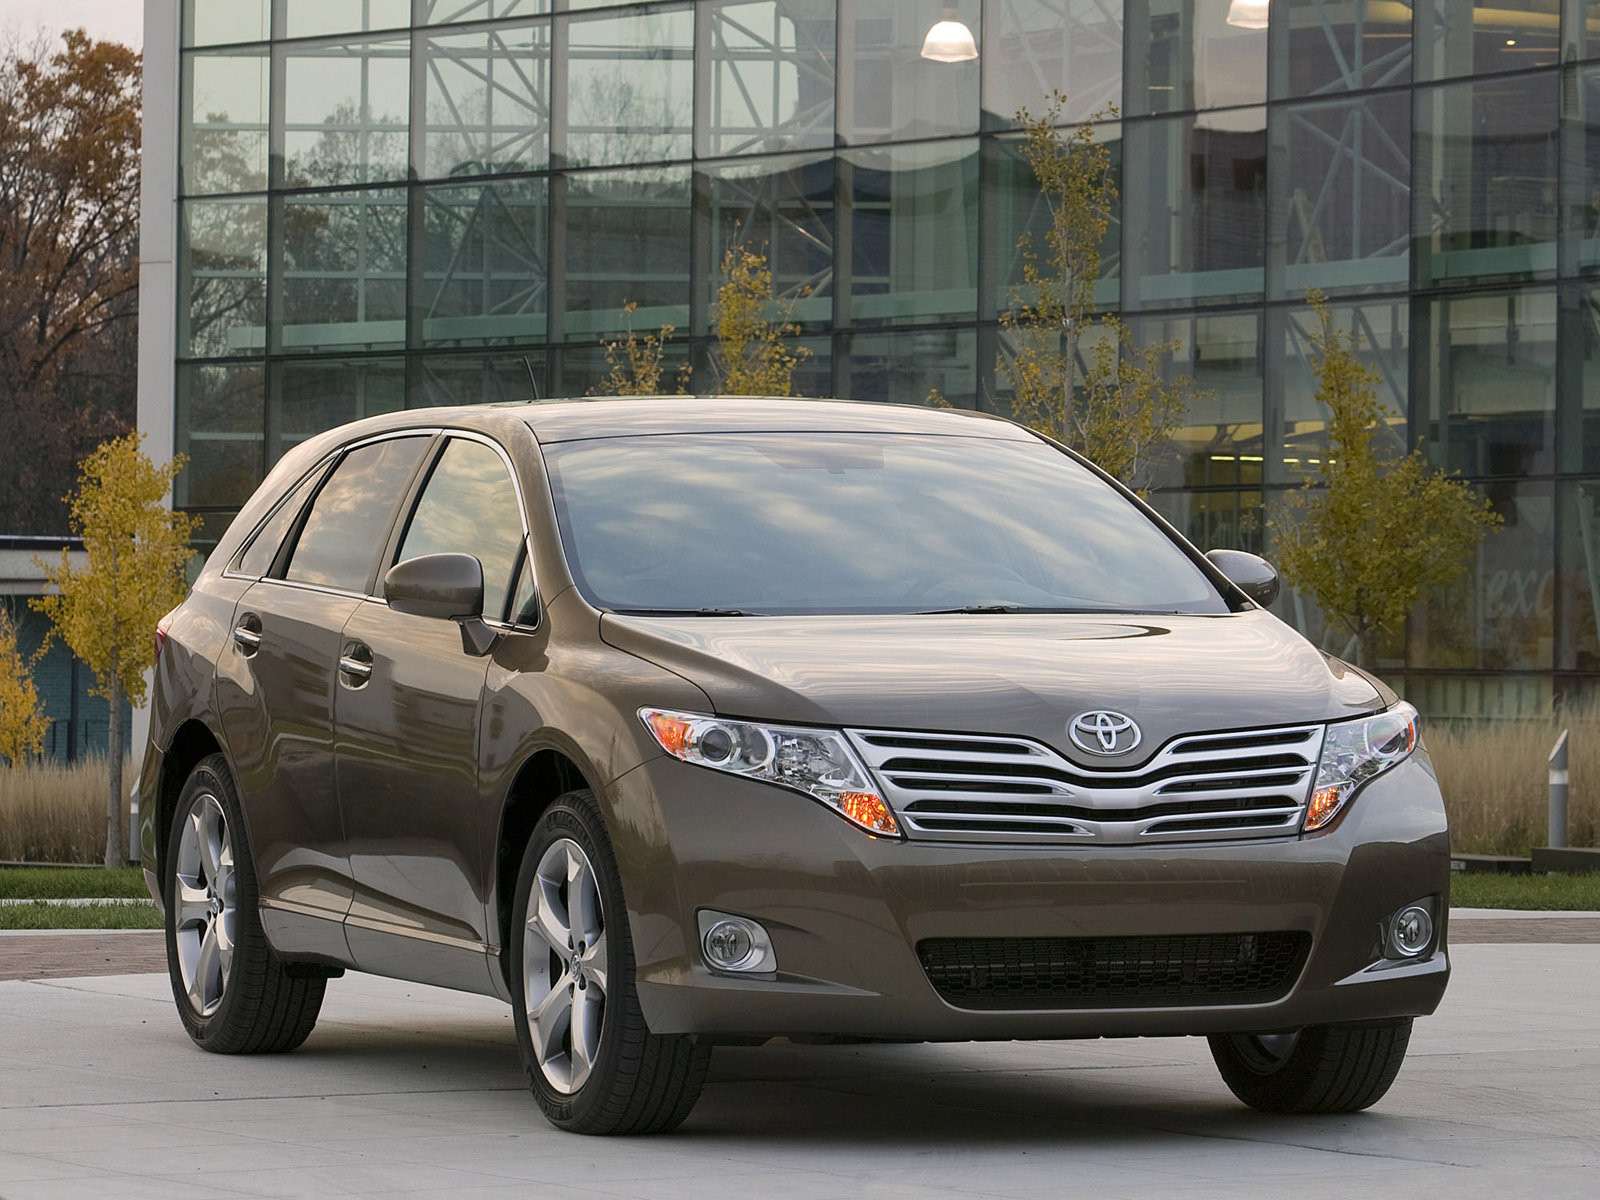 2009 Toyota Venza photo - 1